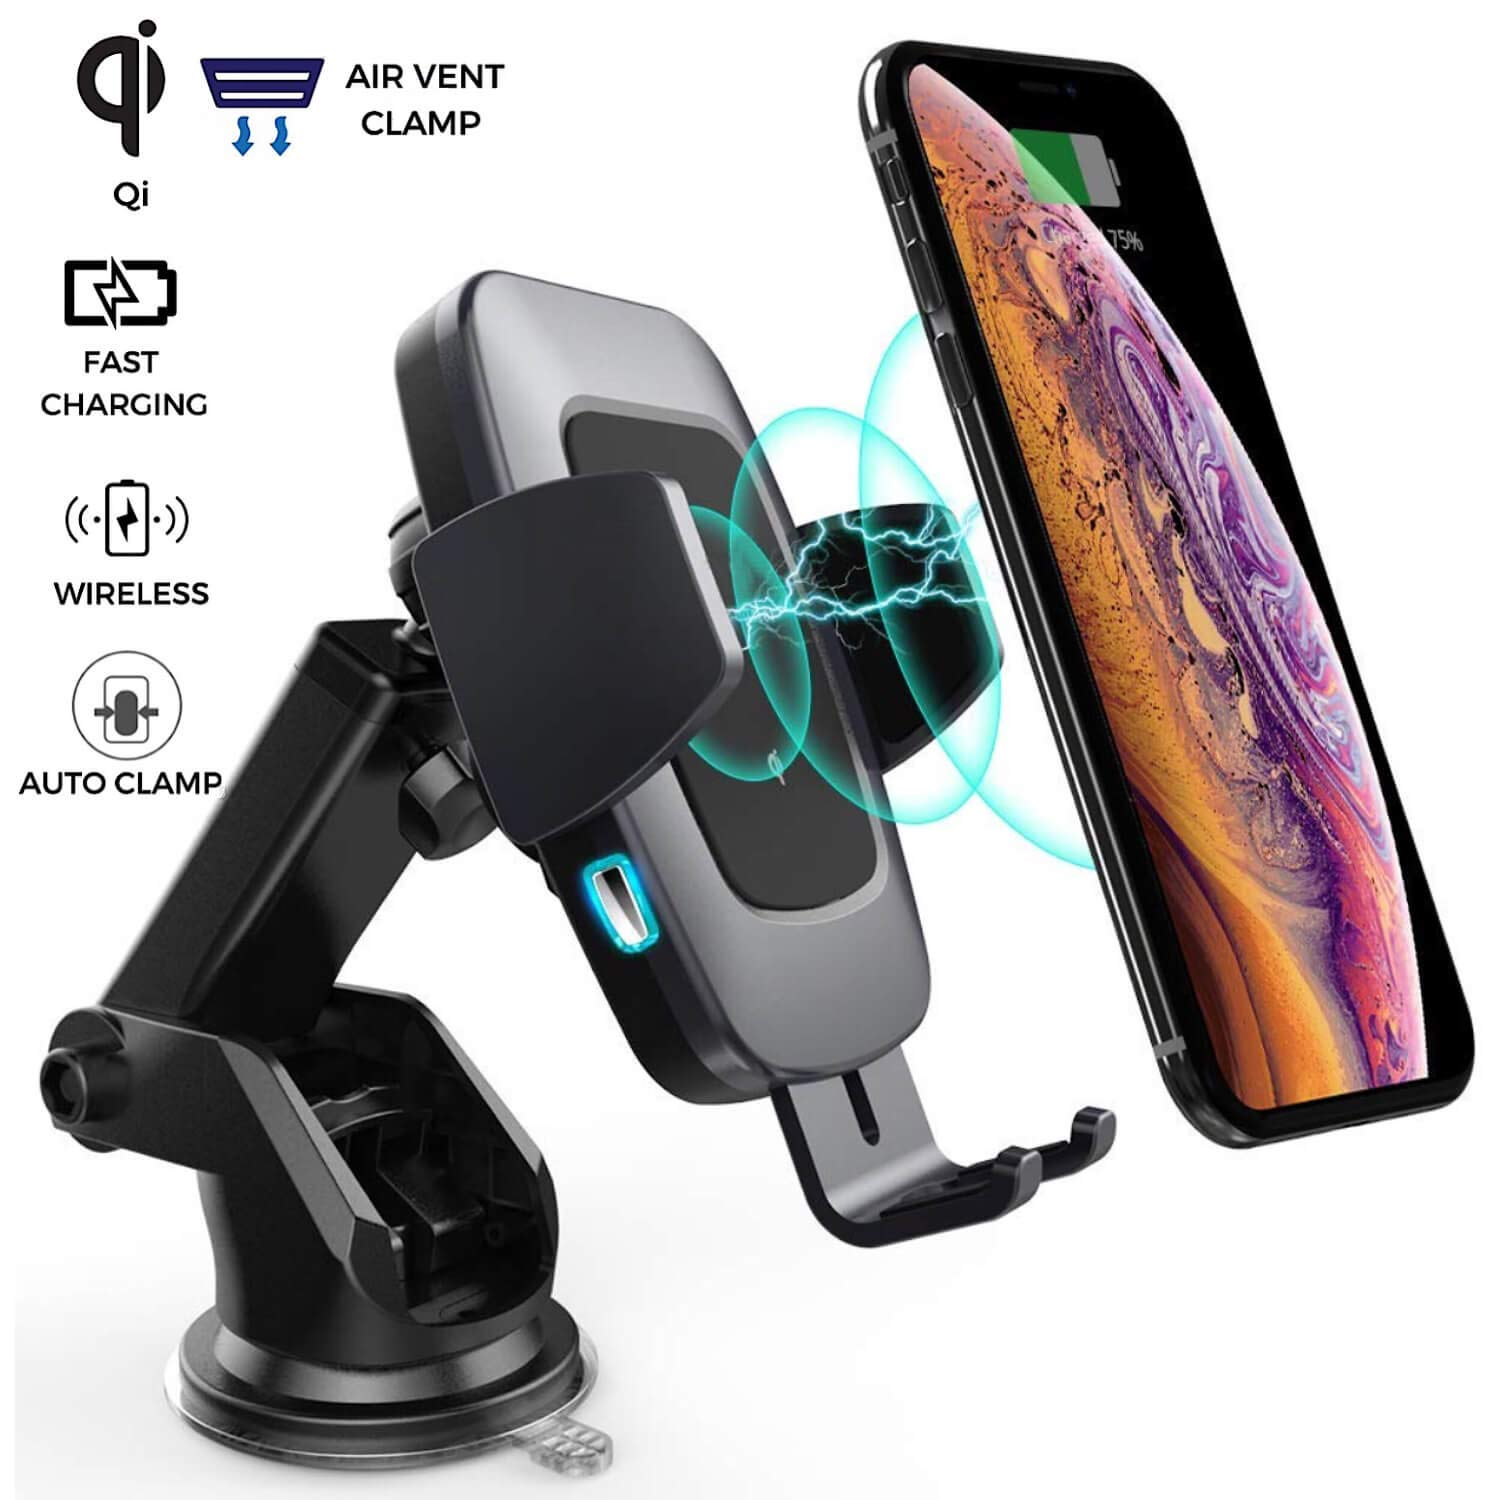 Alium Auto Clamp Wireless Car Charger | Wireless Charging Car Mount | 2 in 1 Function | Dual Suction or Clamp Option | 360 Rotation | Universal Compatible | LED Indication Light | Qi-Enabled Devices by AliumCo